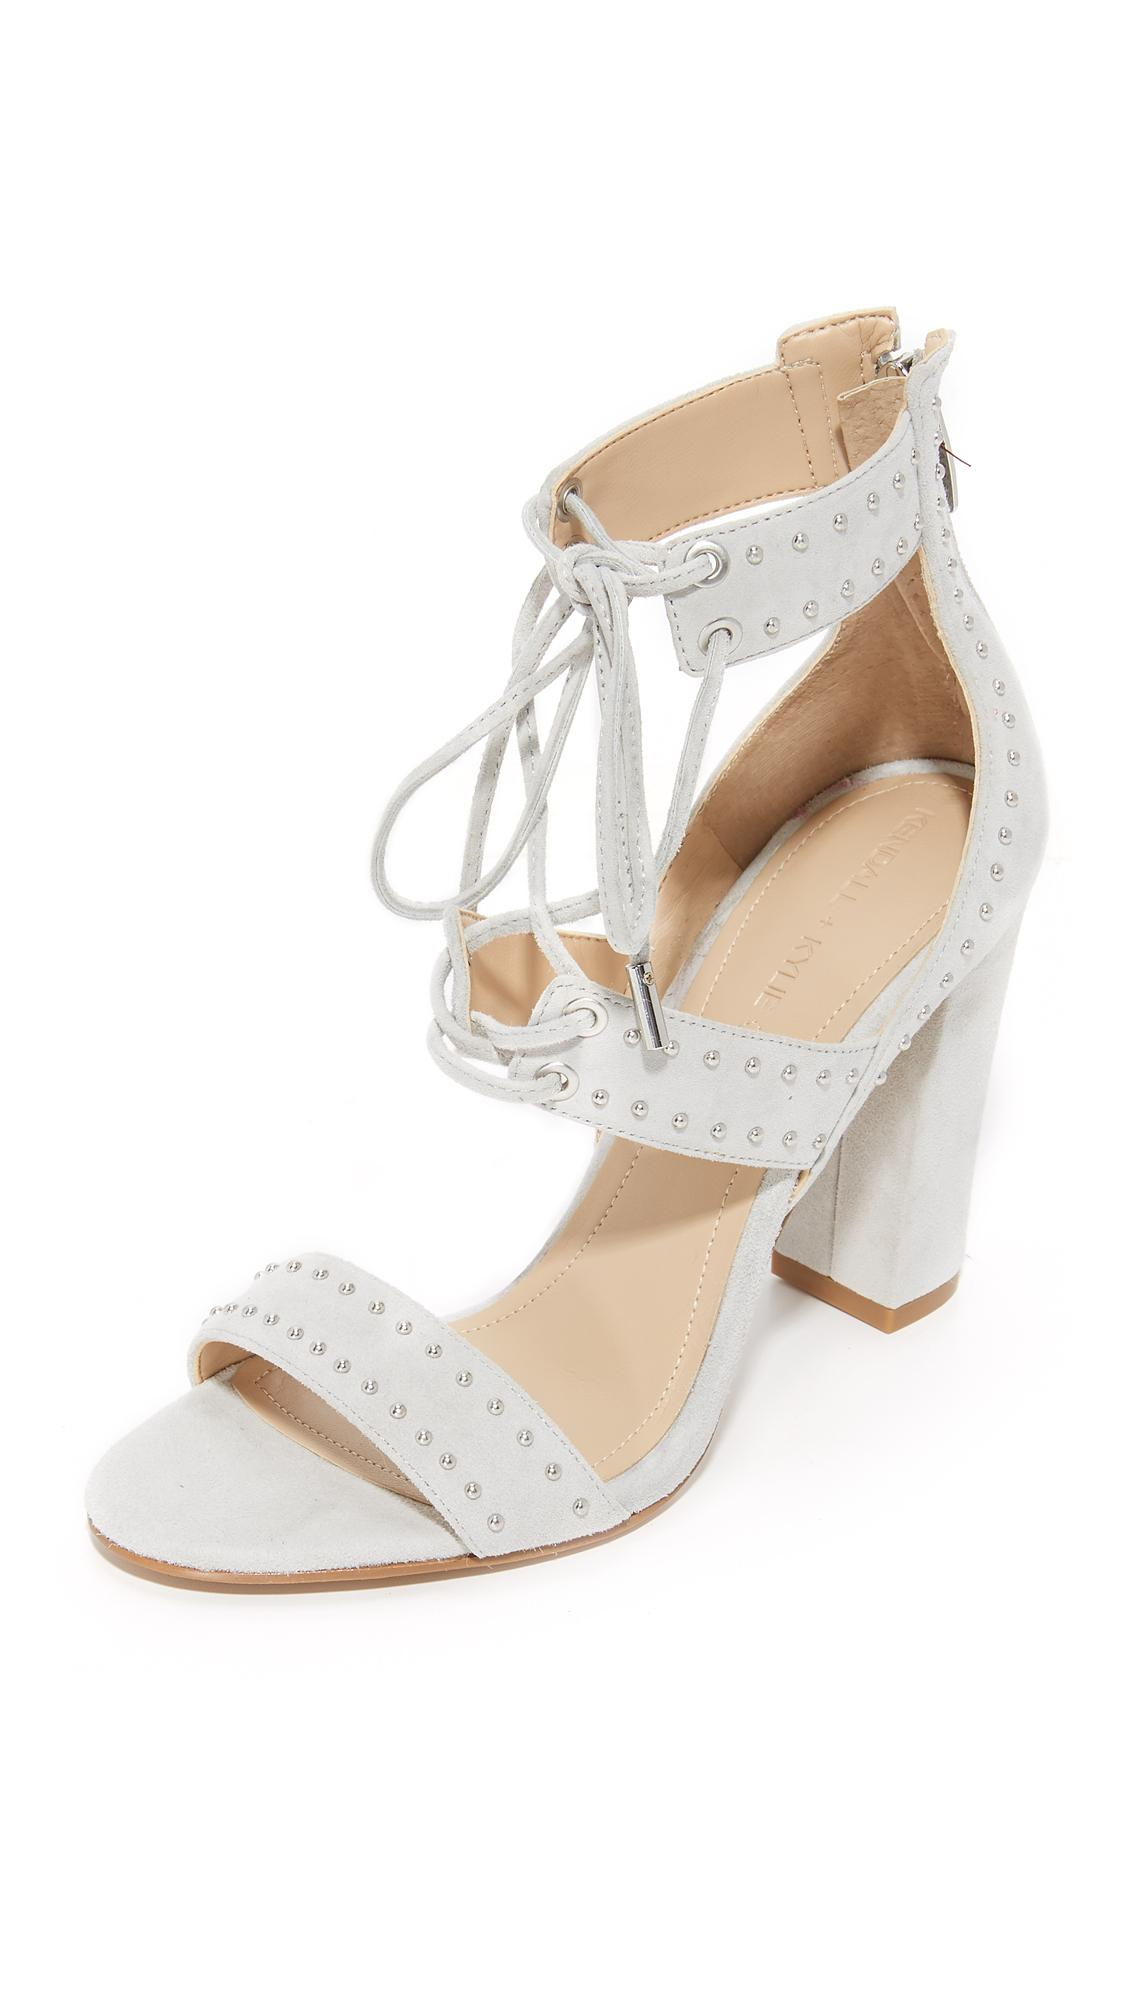 Kendall Kylie Dawn Sandals In Gray Lyst